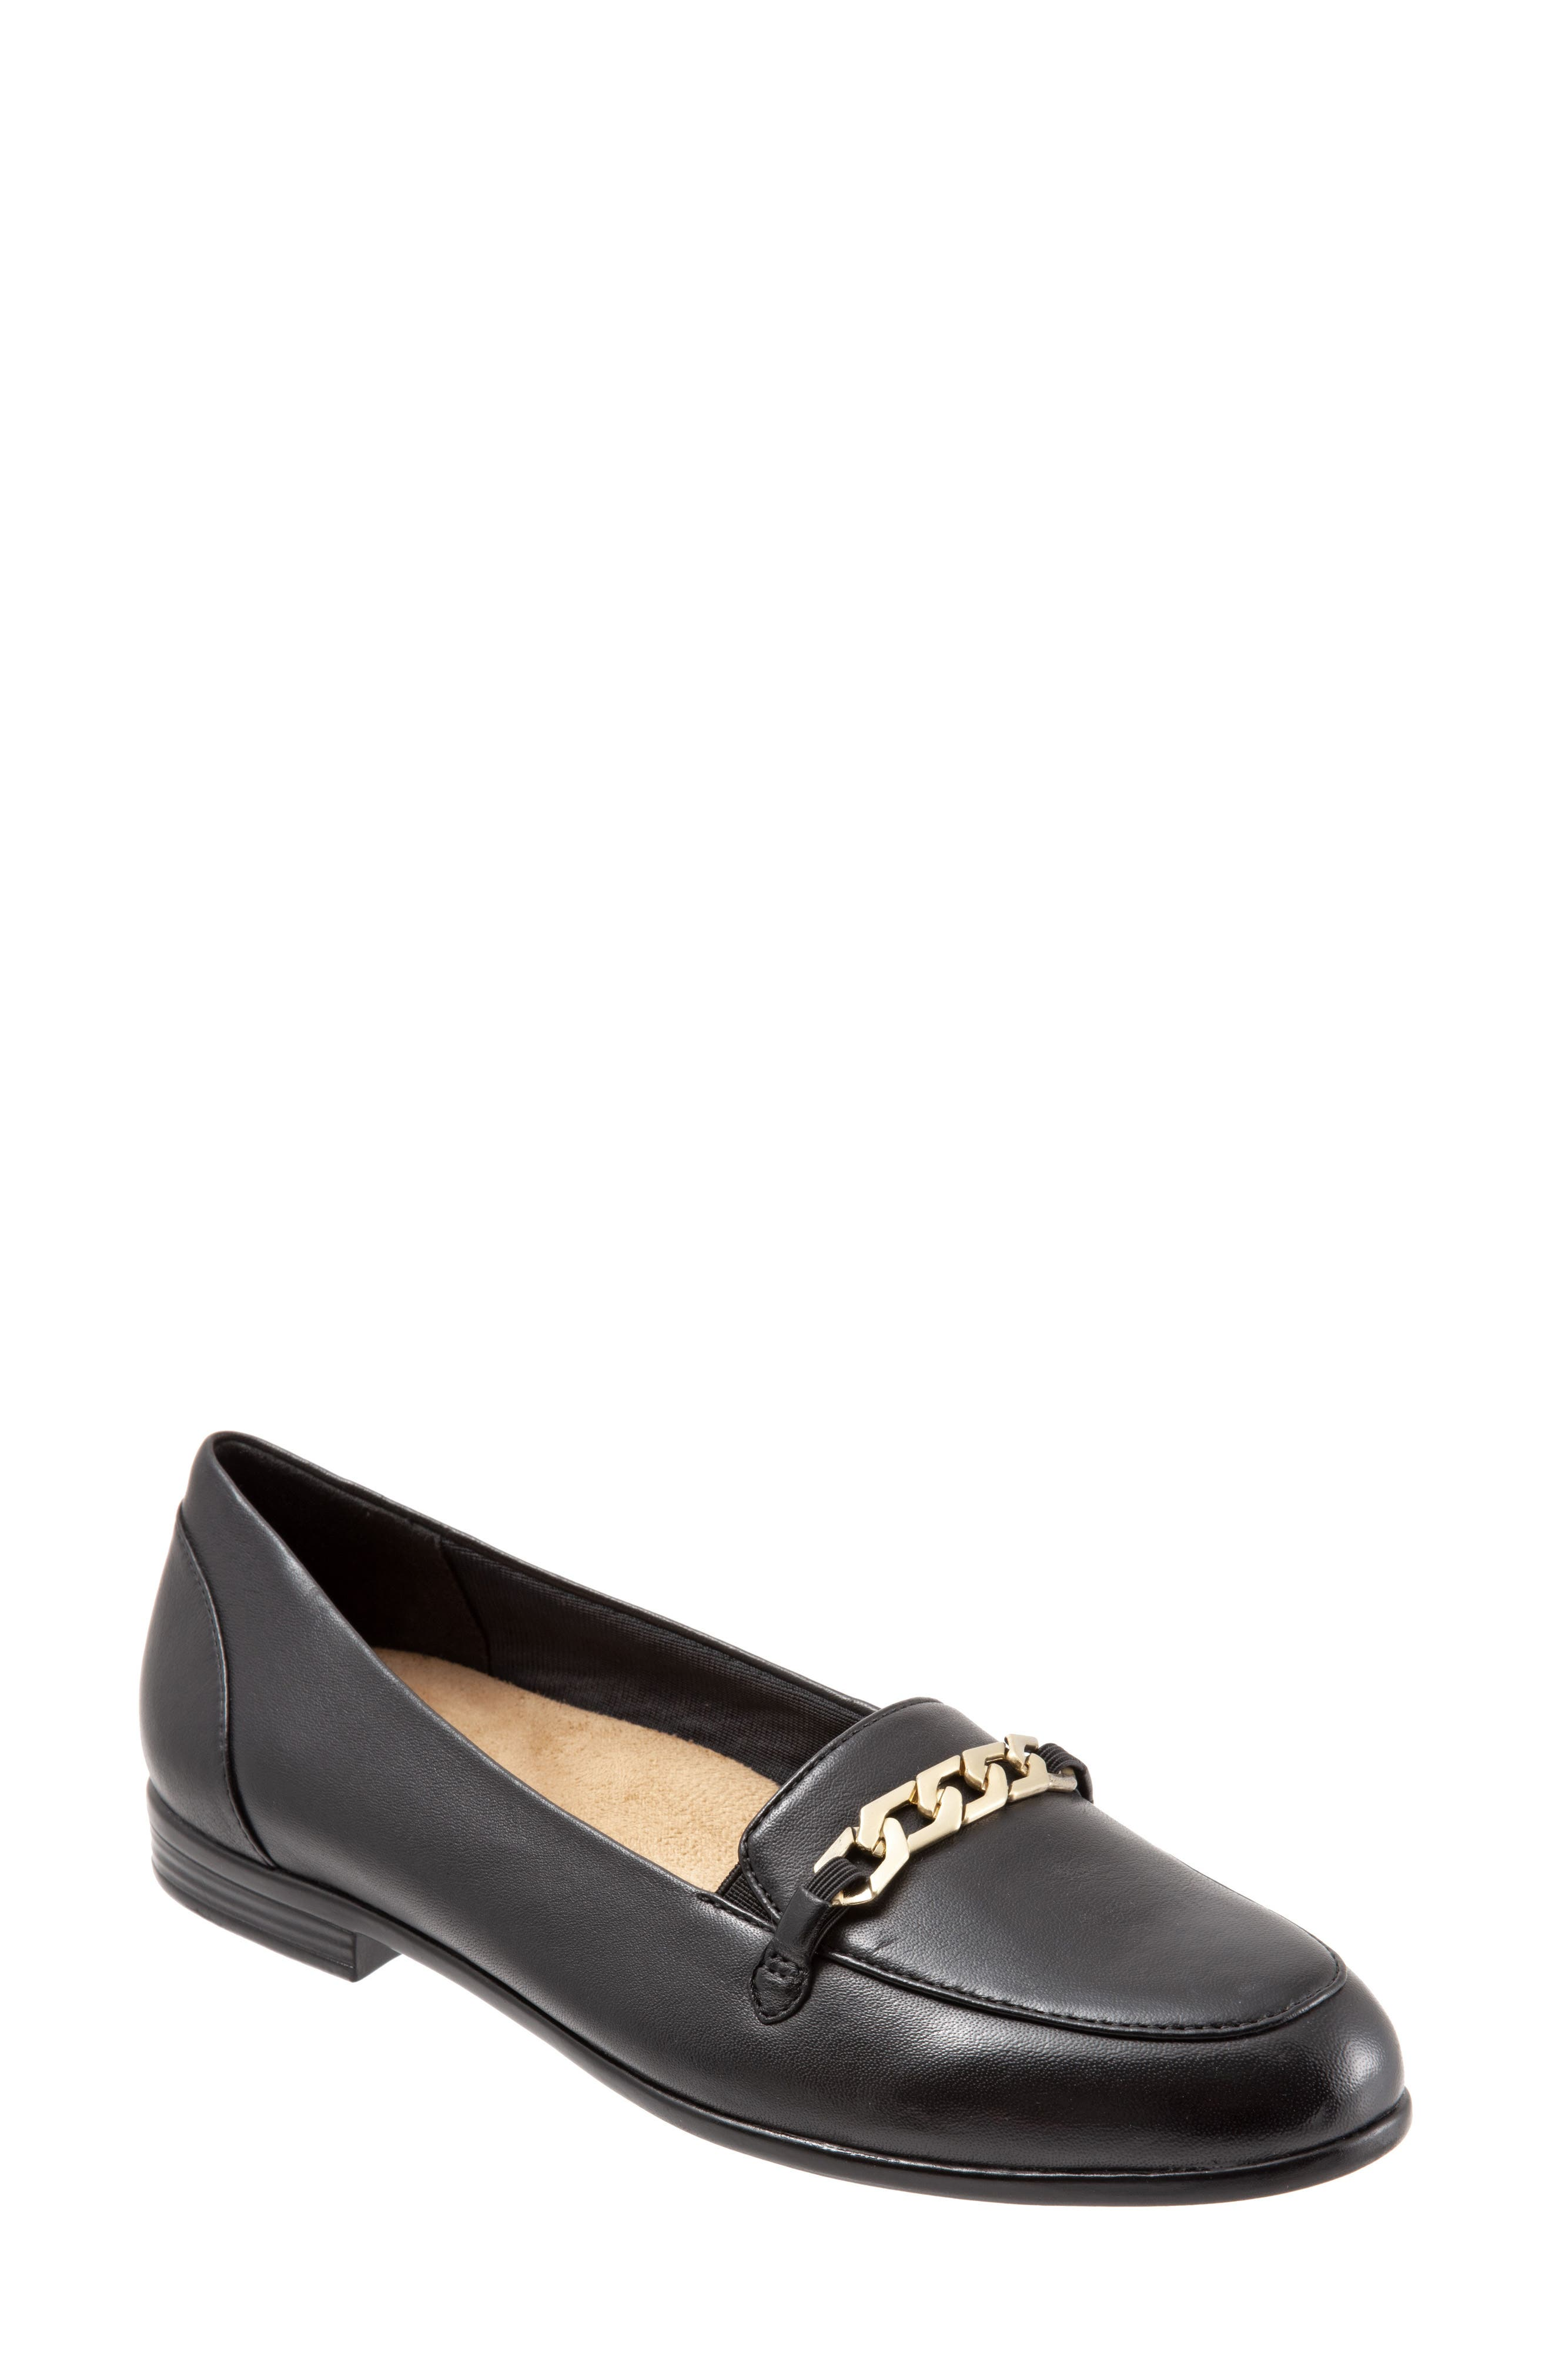 Anastasia Flat,                         Main,                         color, DARK BLACK LEATHER